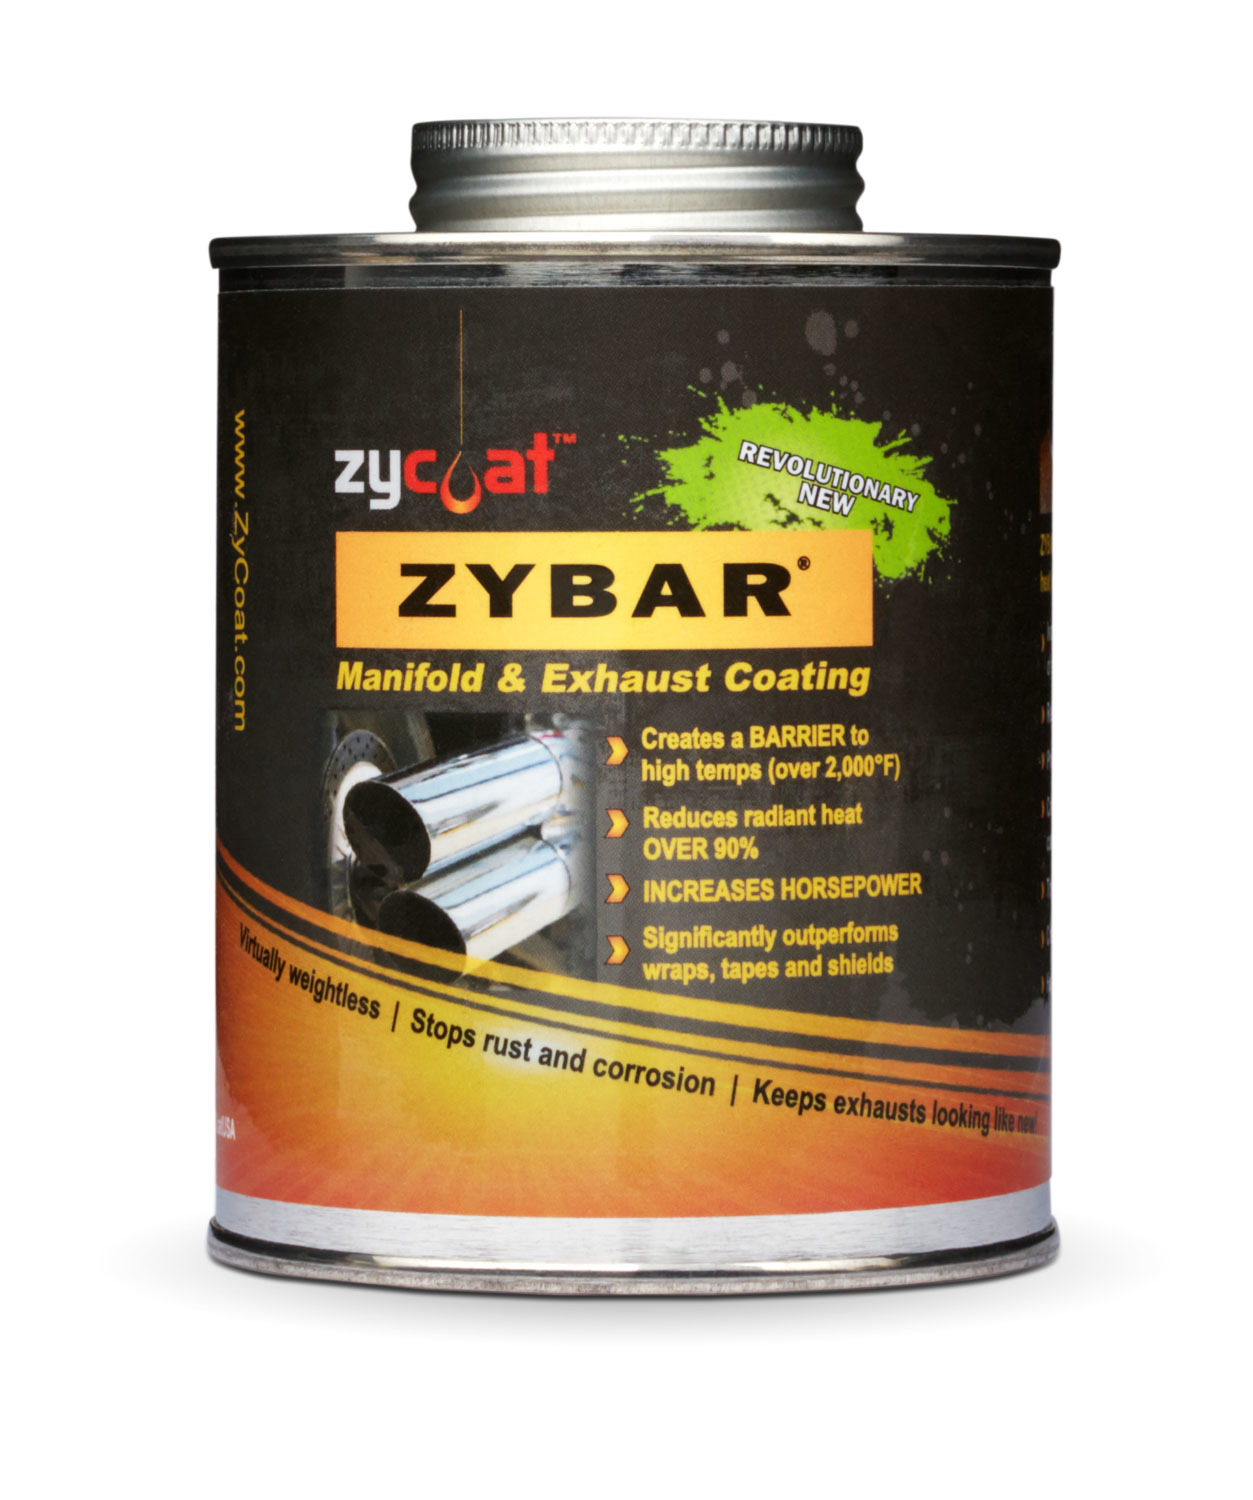 Zycoat 13016 Paint, Exhaust / Header, High Temperature, Ceramic Urethane, Cast Iron Gray, 16 oz Can, Each